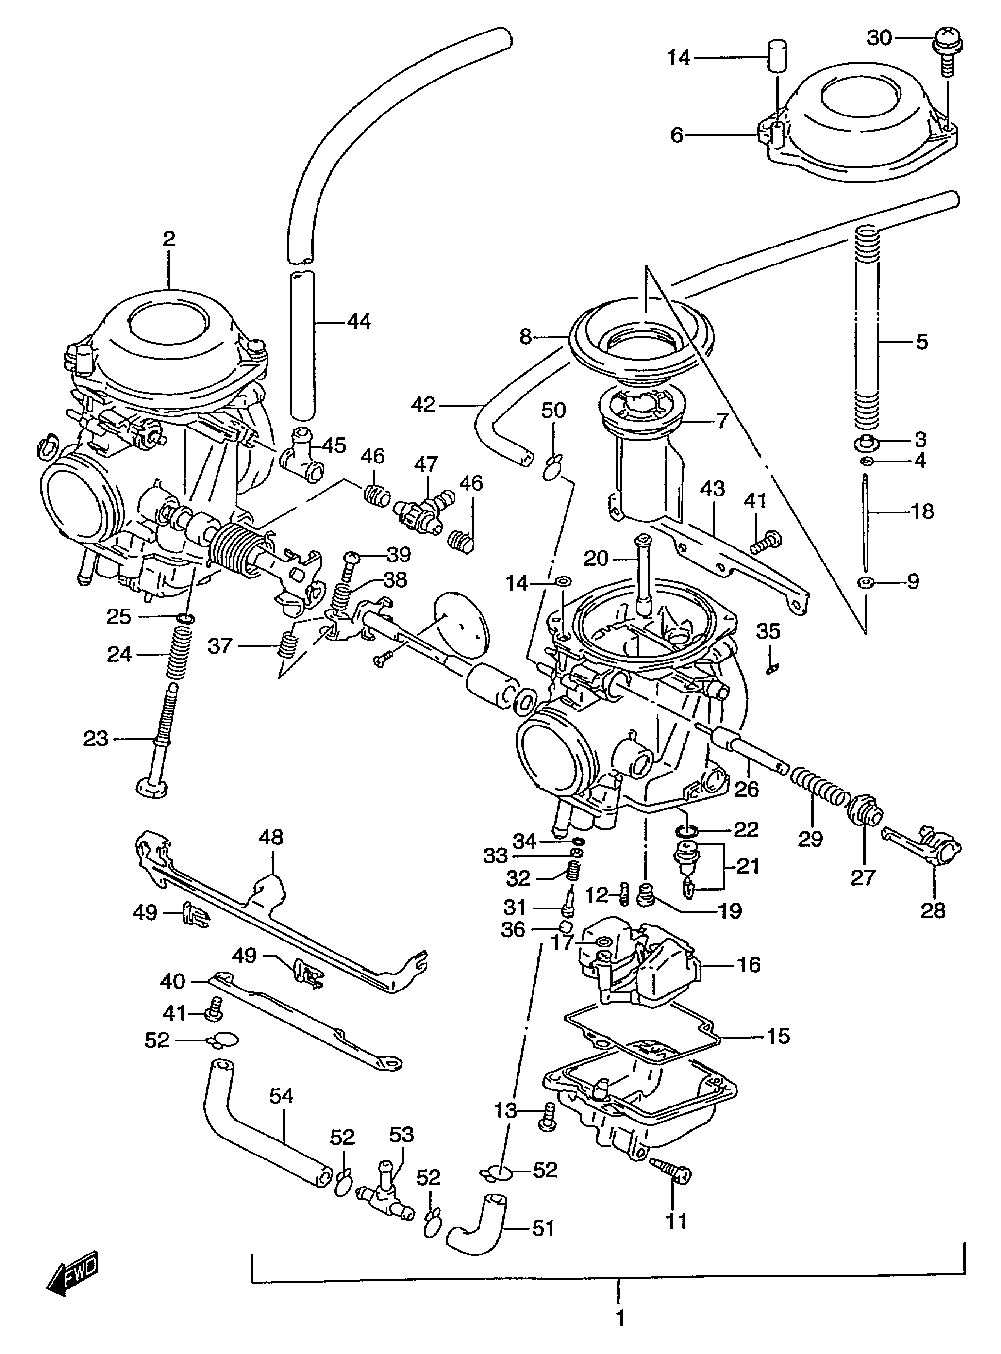 F650 Engine Diagram Wiring Library 1998 Ford Taurus Fuse Box Gs500ecarburetorv97 W98 X99 Y